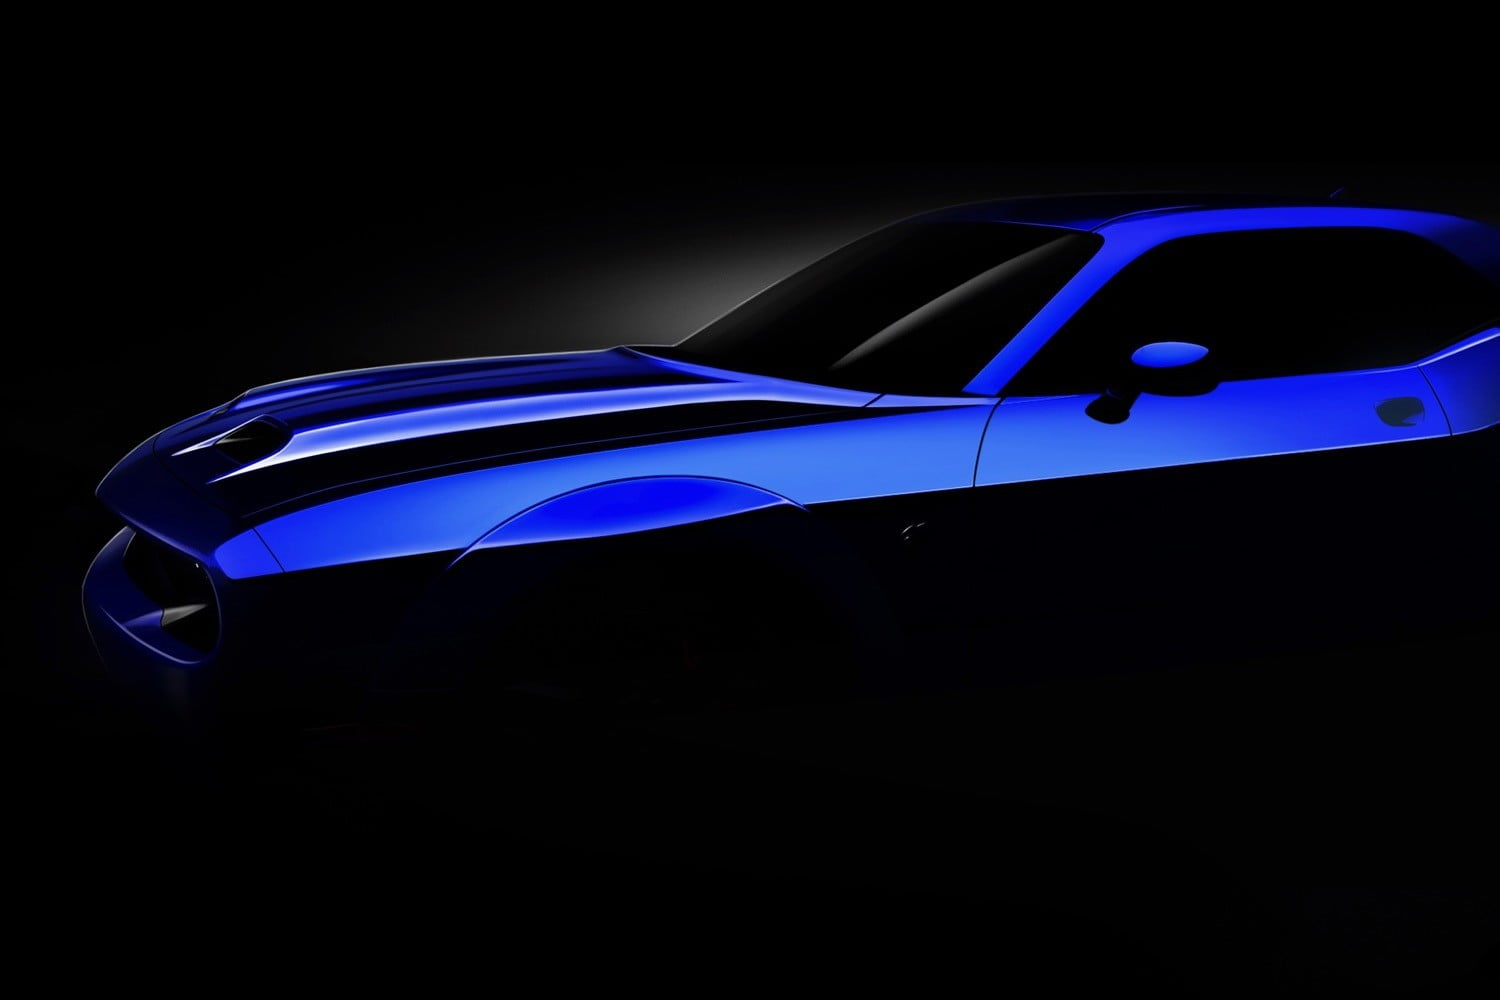 2019 Dodge Challenger Srt Hellcat Gets Dual Snorkel Hood Digital